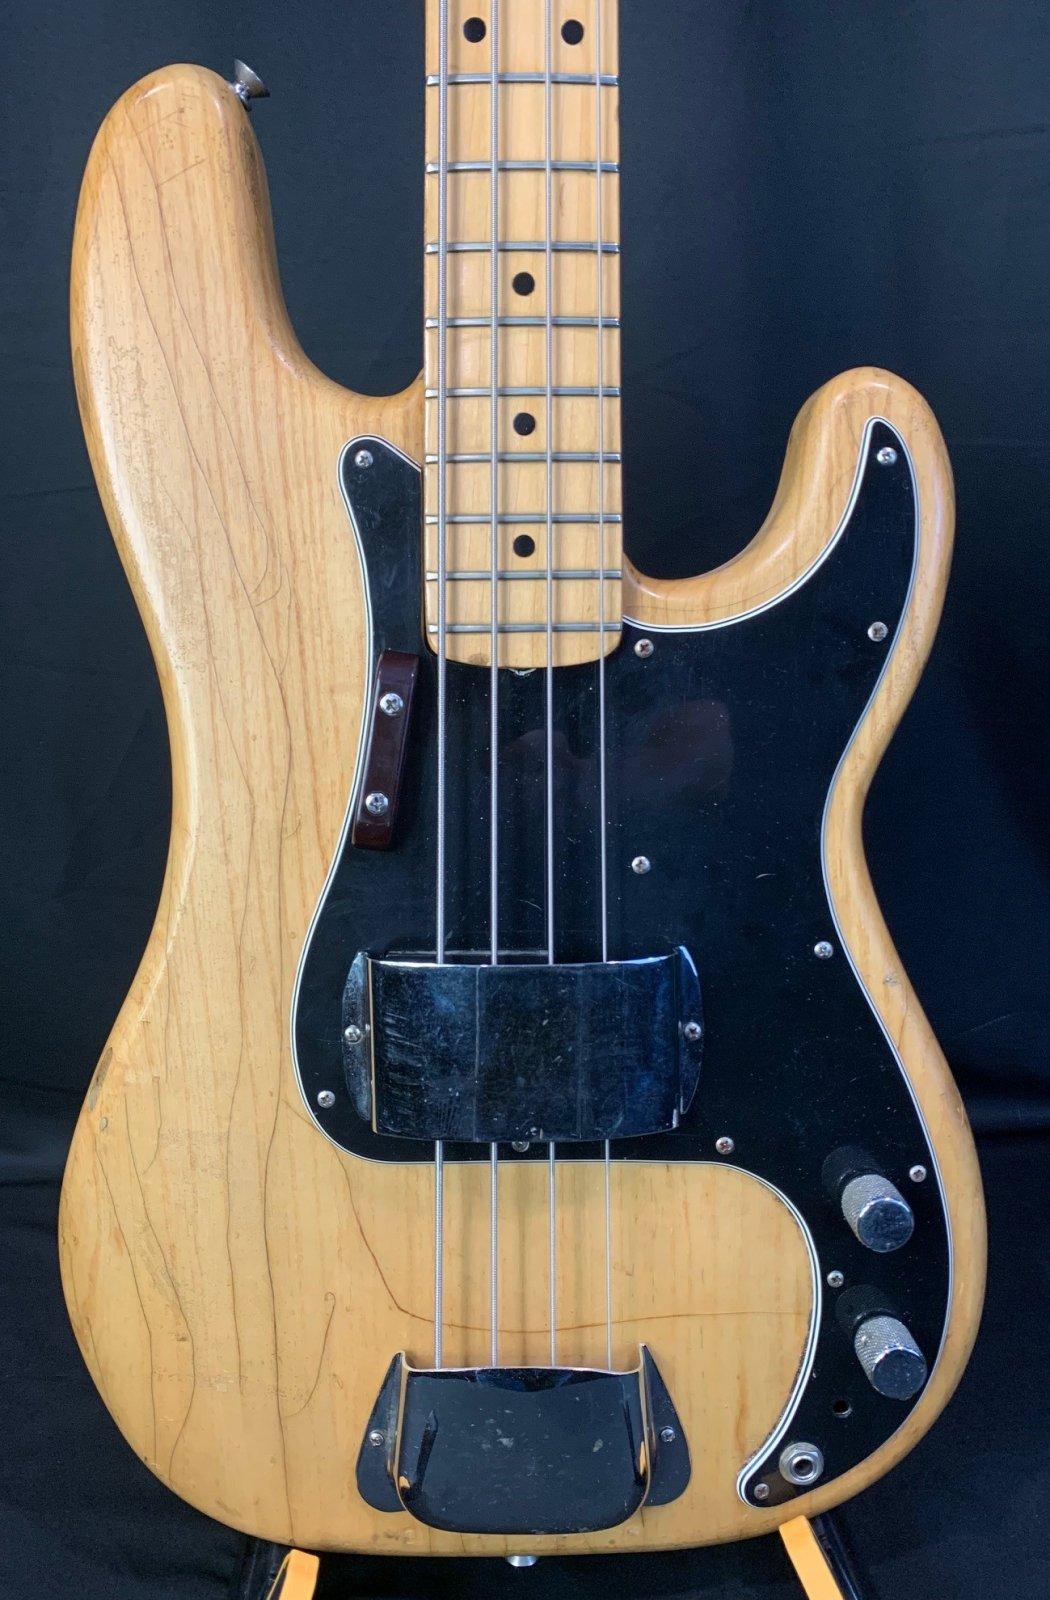 1976 Fender Precision Bass in Natural with a coffin case